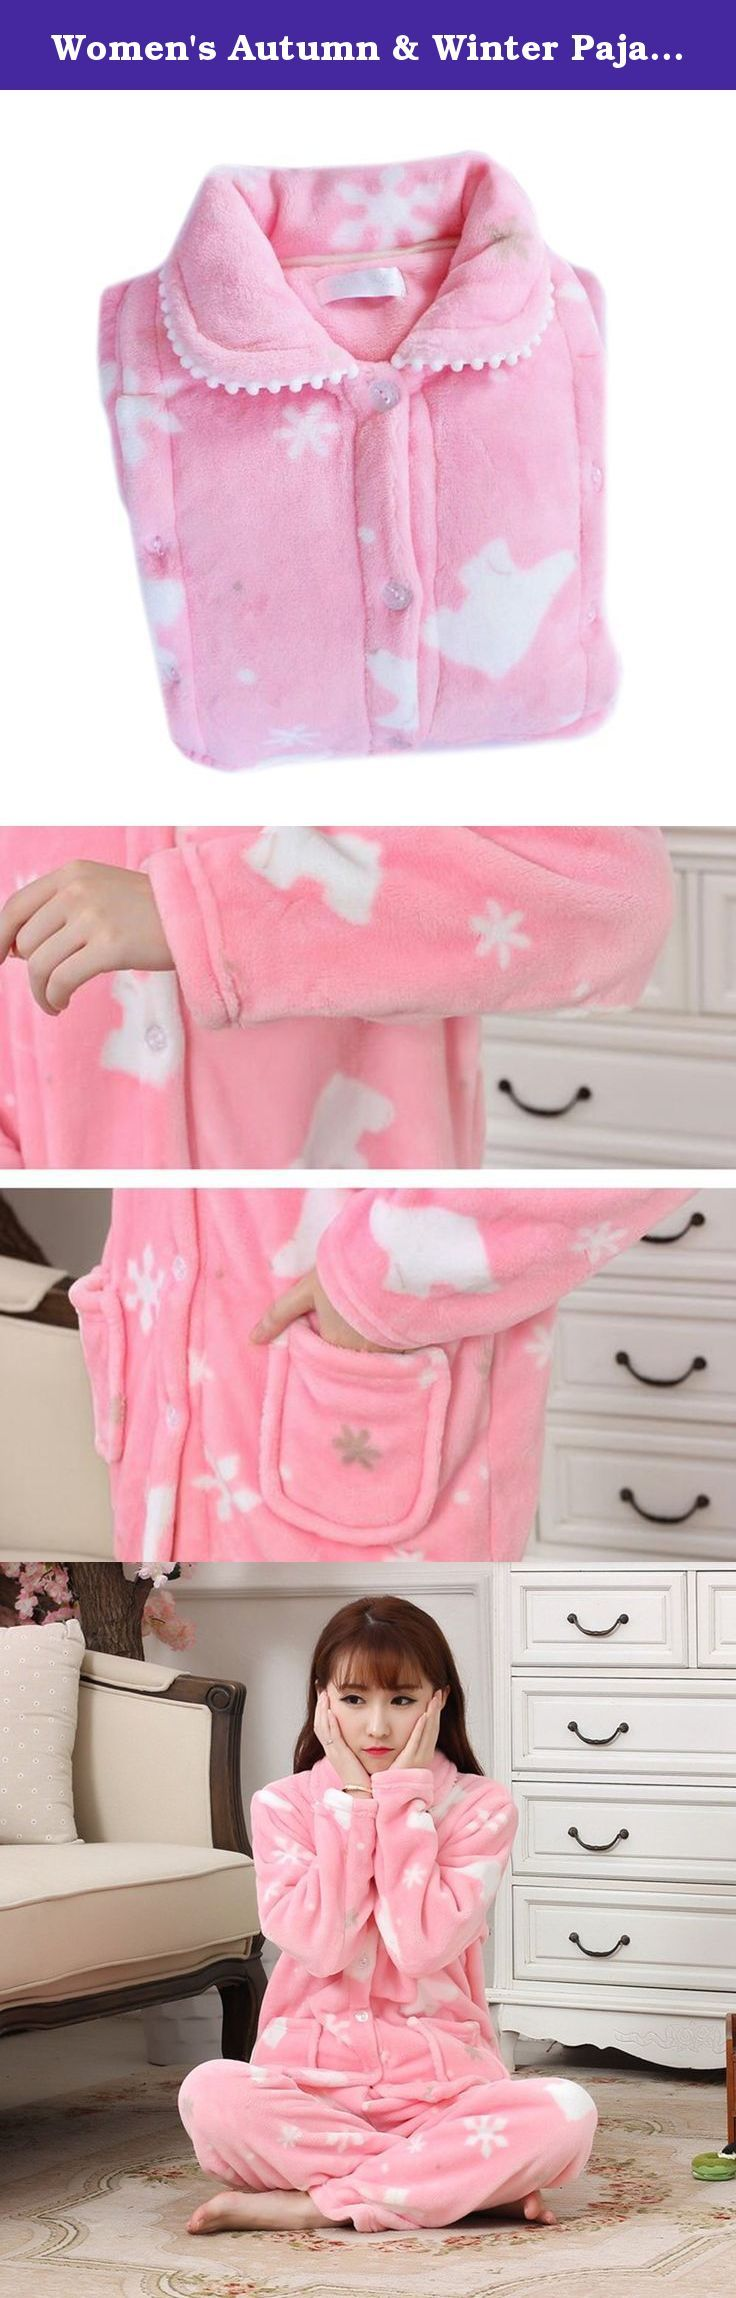 Women's Autumn & Winter Pajamas Thick Flannel Pregnancy Lactation Leisure Wear pink L. Features: Natural fine fibers Soft and smooth Thick and warm Fast colors Waist size can be adjusted Parameters: Material: polyester fiber Weight: 350g Color: pink, green Size: M, L, XL Size Chest circumference (cm) Clothes length (cm) Pants length (cm) Waist Circumference (cm) Hip Circumference (cm) Shoulder width(cm) M 104 65 99 80-100 105 42 L 107 68 101 85-112 110 45 XL 110 70 103 88-114 115 48…